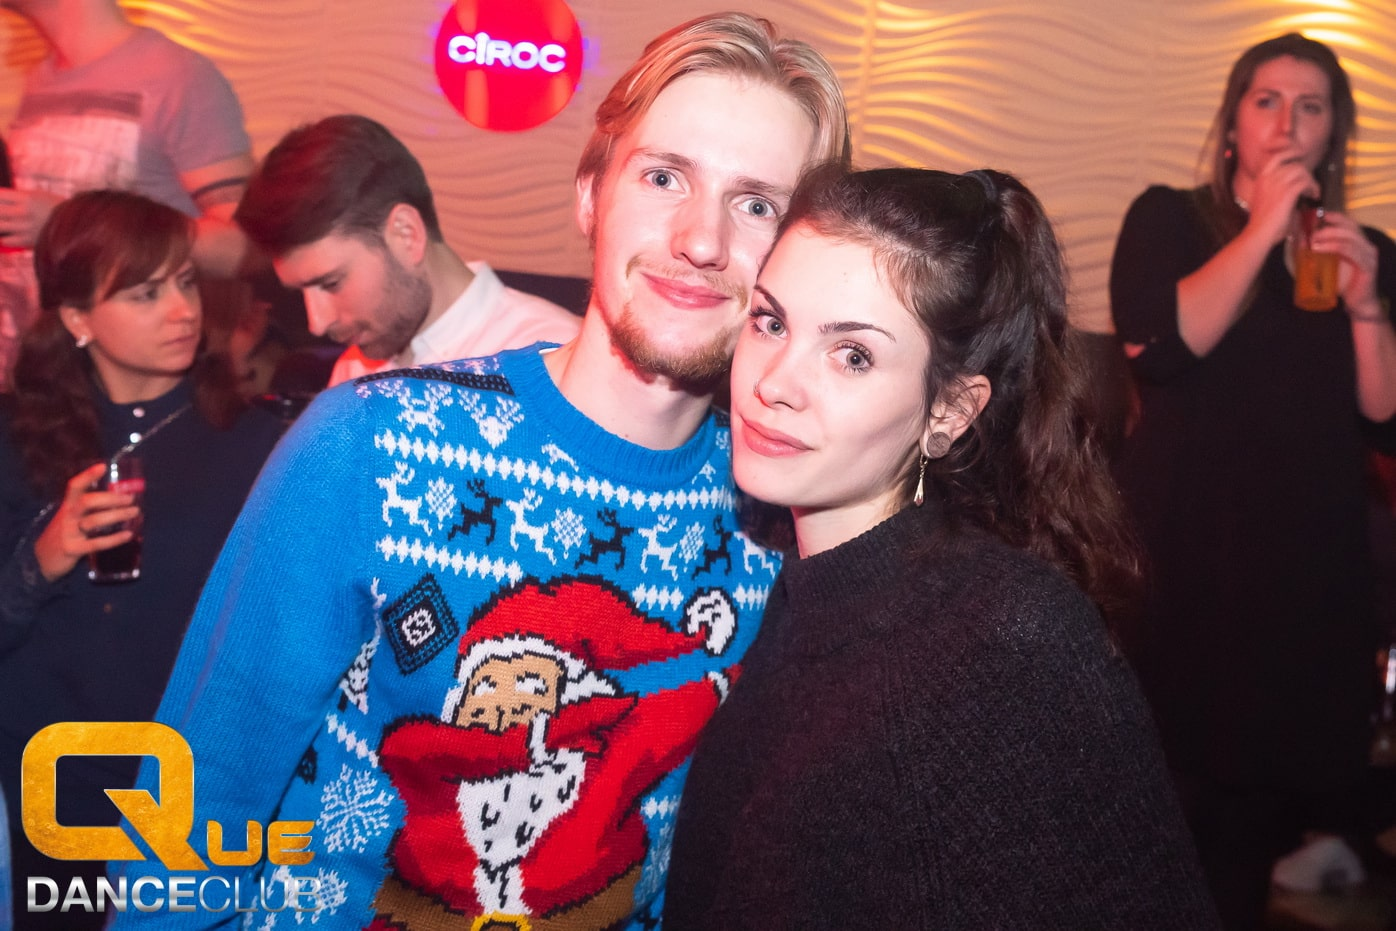 2018_12_25_Que_Danceclub_Engels_Nacht_2018_Nightlife_Scene_Timo_078